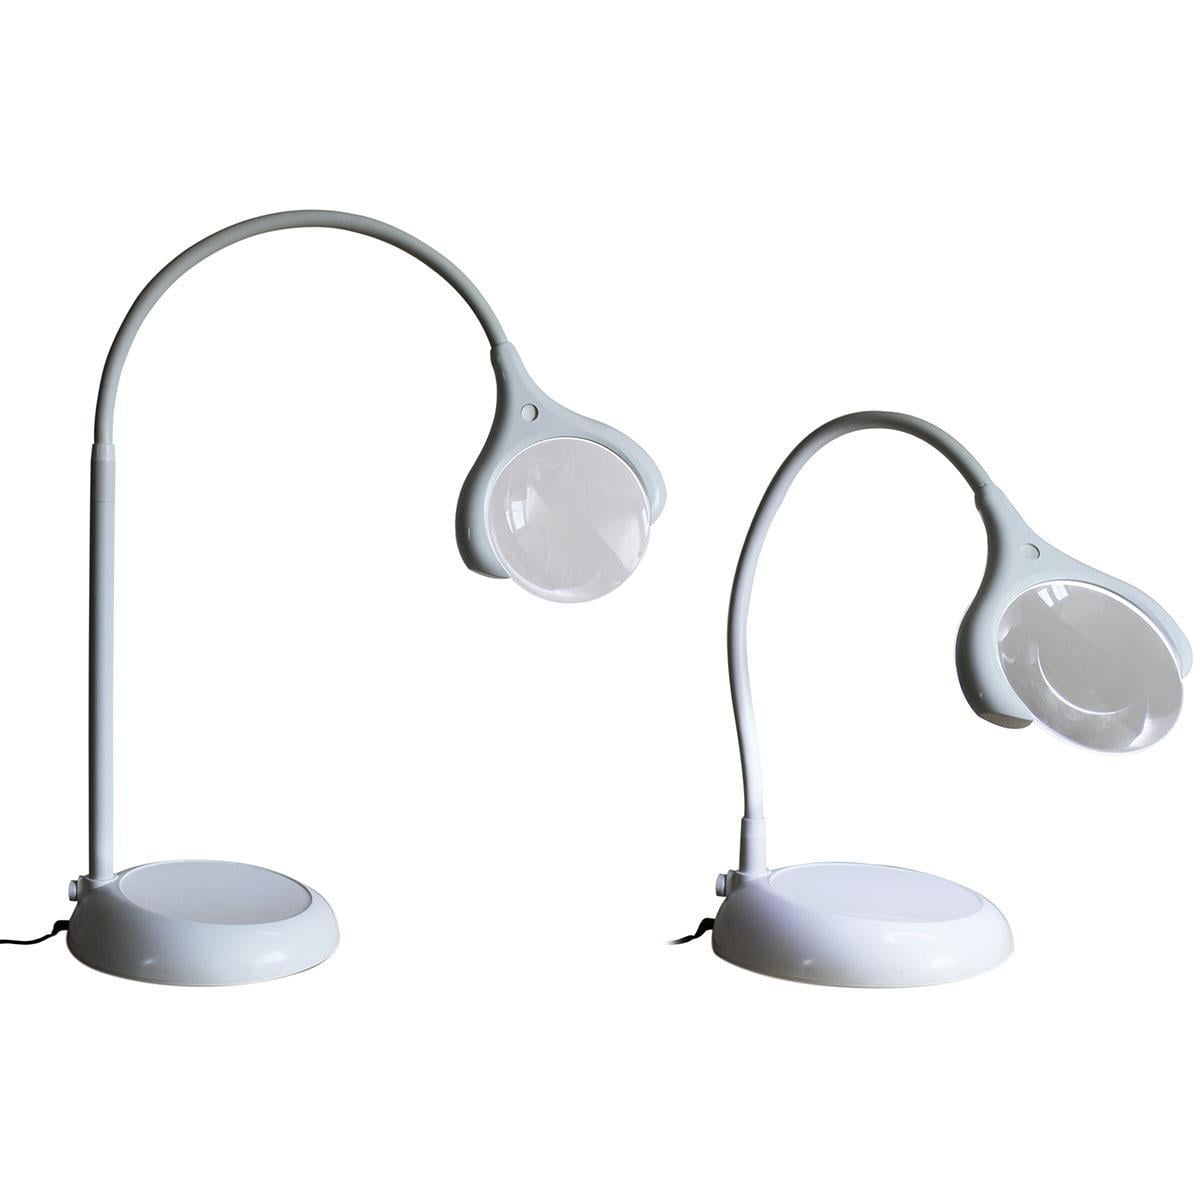 Magnificent floor table led magnifying lamp white for Craft lamp with magnifier